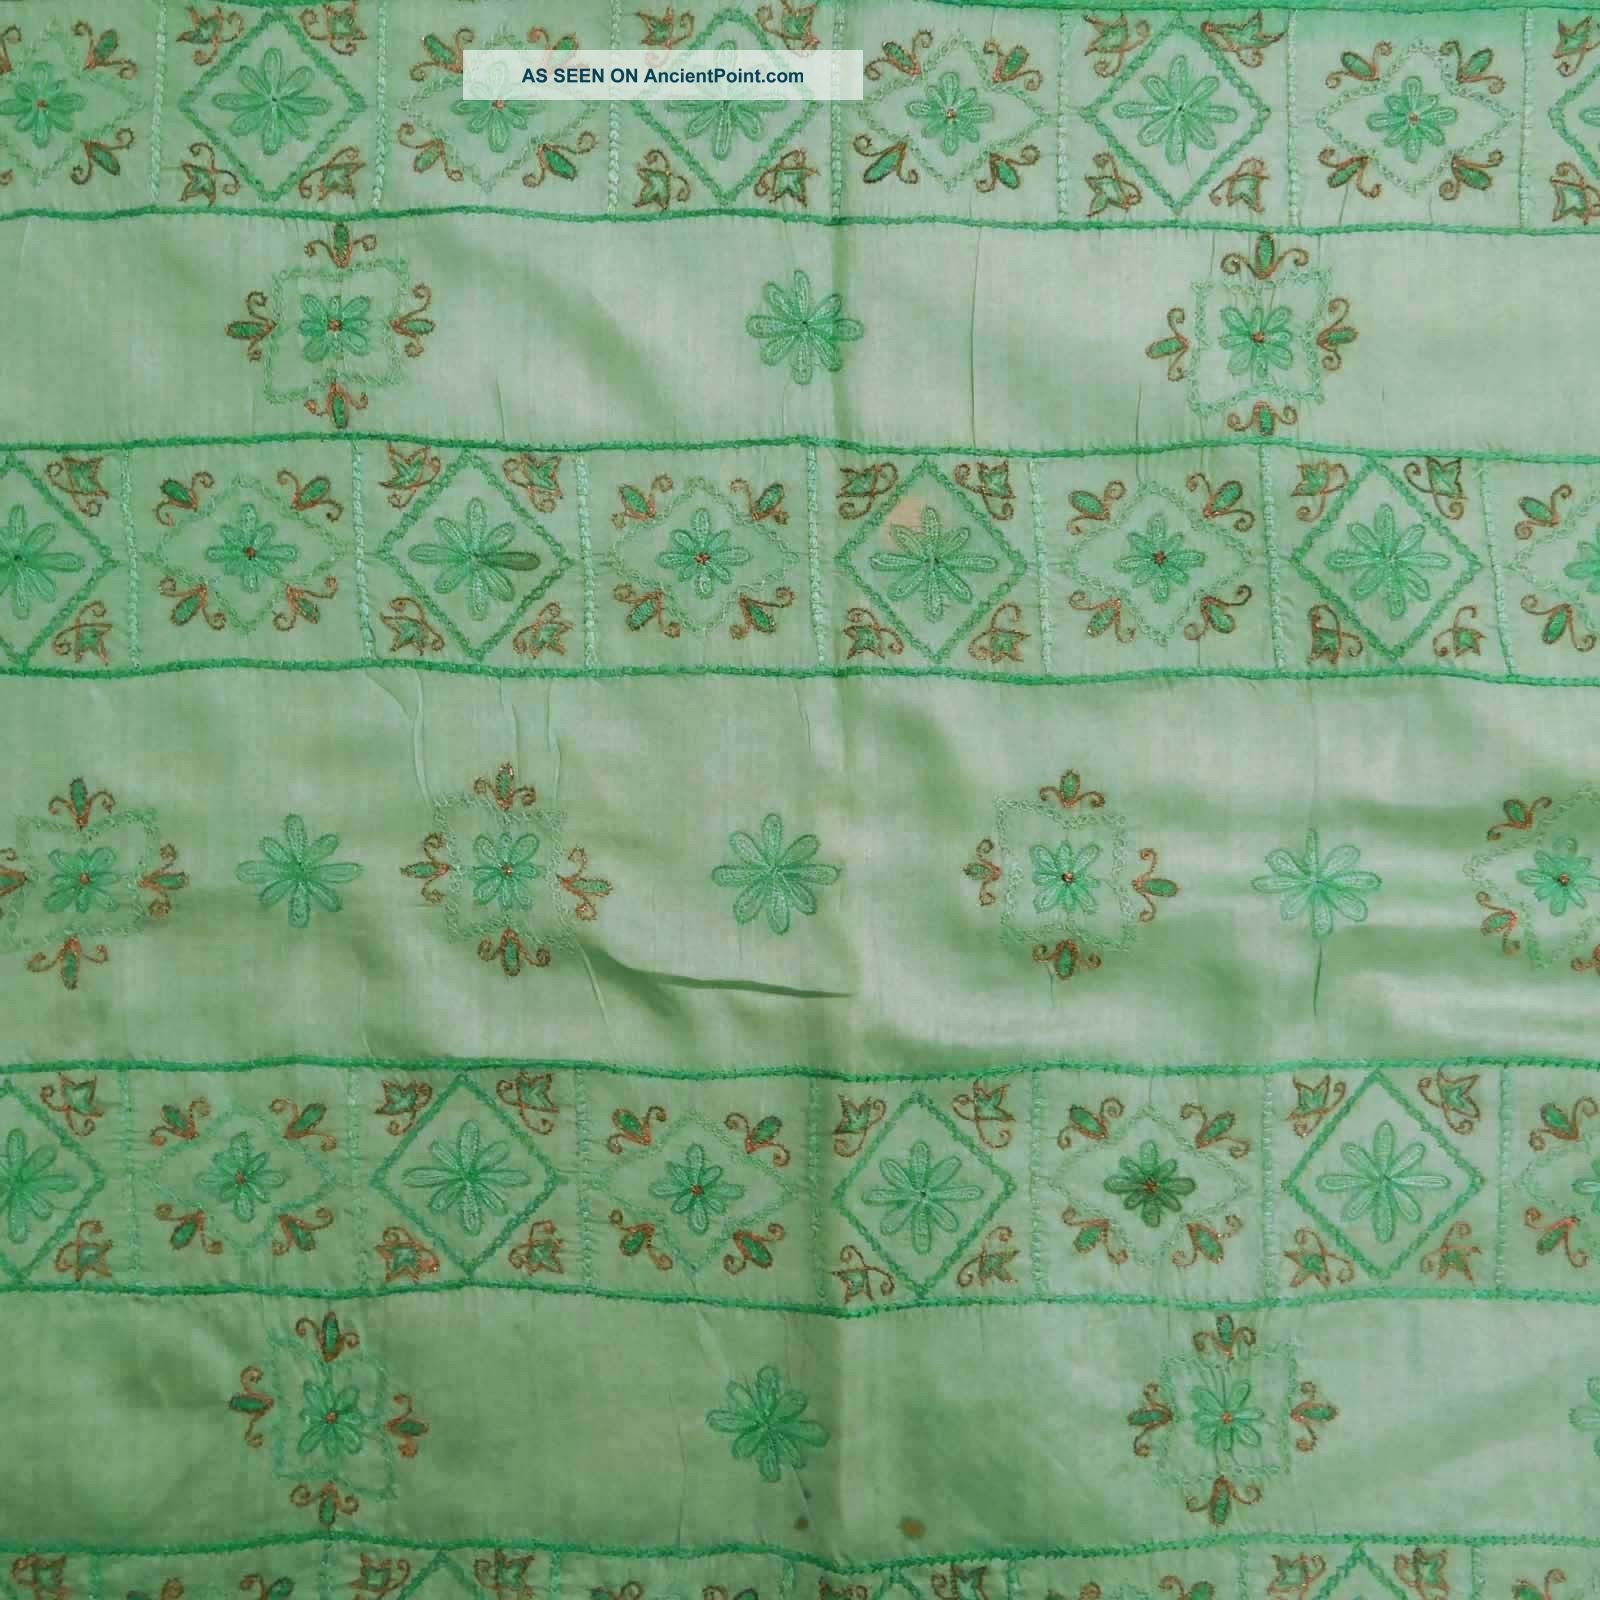 Vintage Saree 100% Pure Silk Embroidered Art Craft Sari Fabric India Wrap Green Other photo